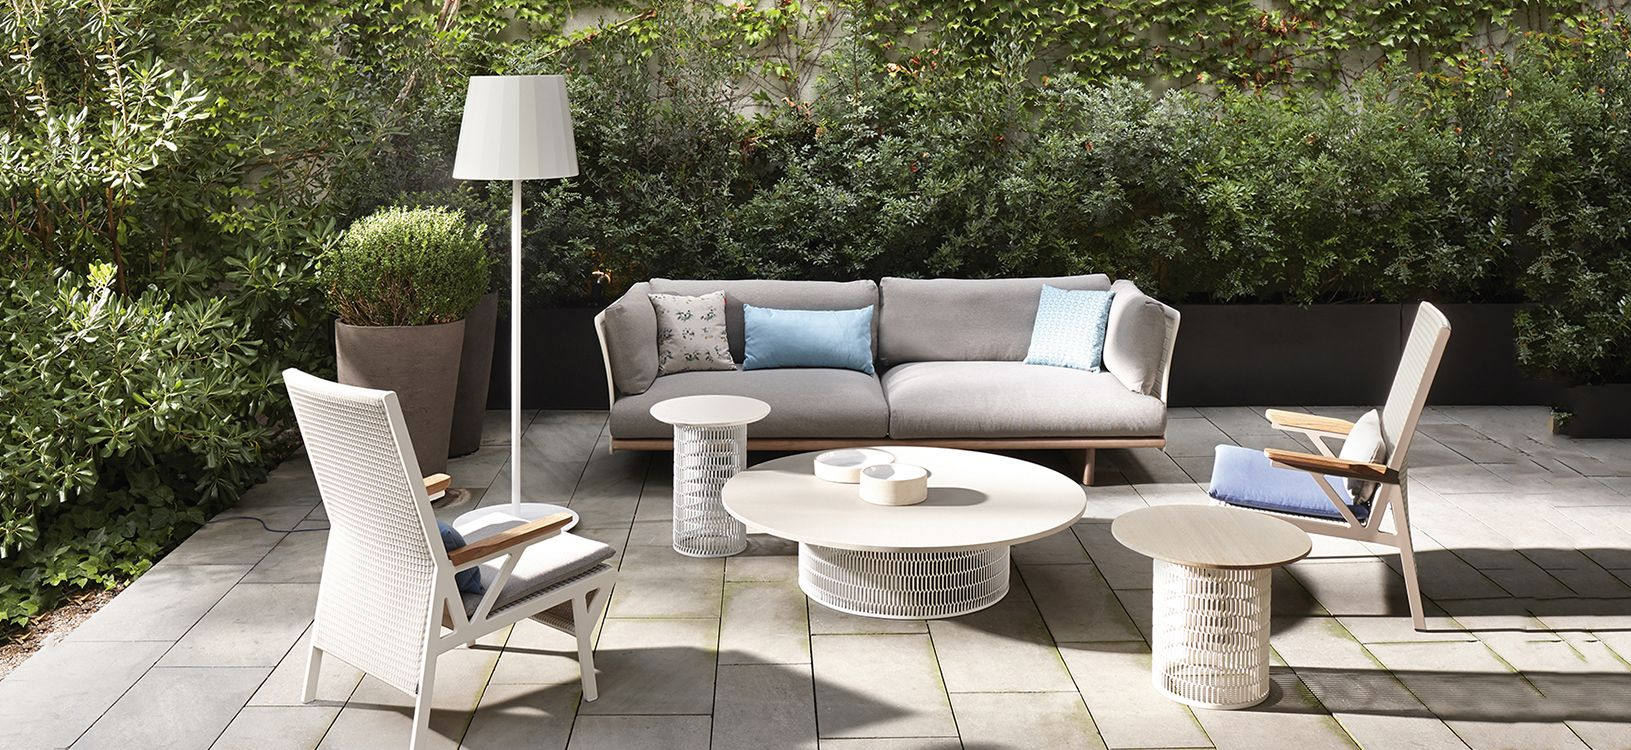 Kettal - Mesh | Patio||Porch||Backyard||Veranda | Pinterest ...